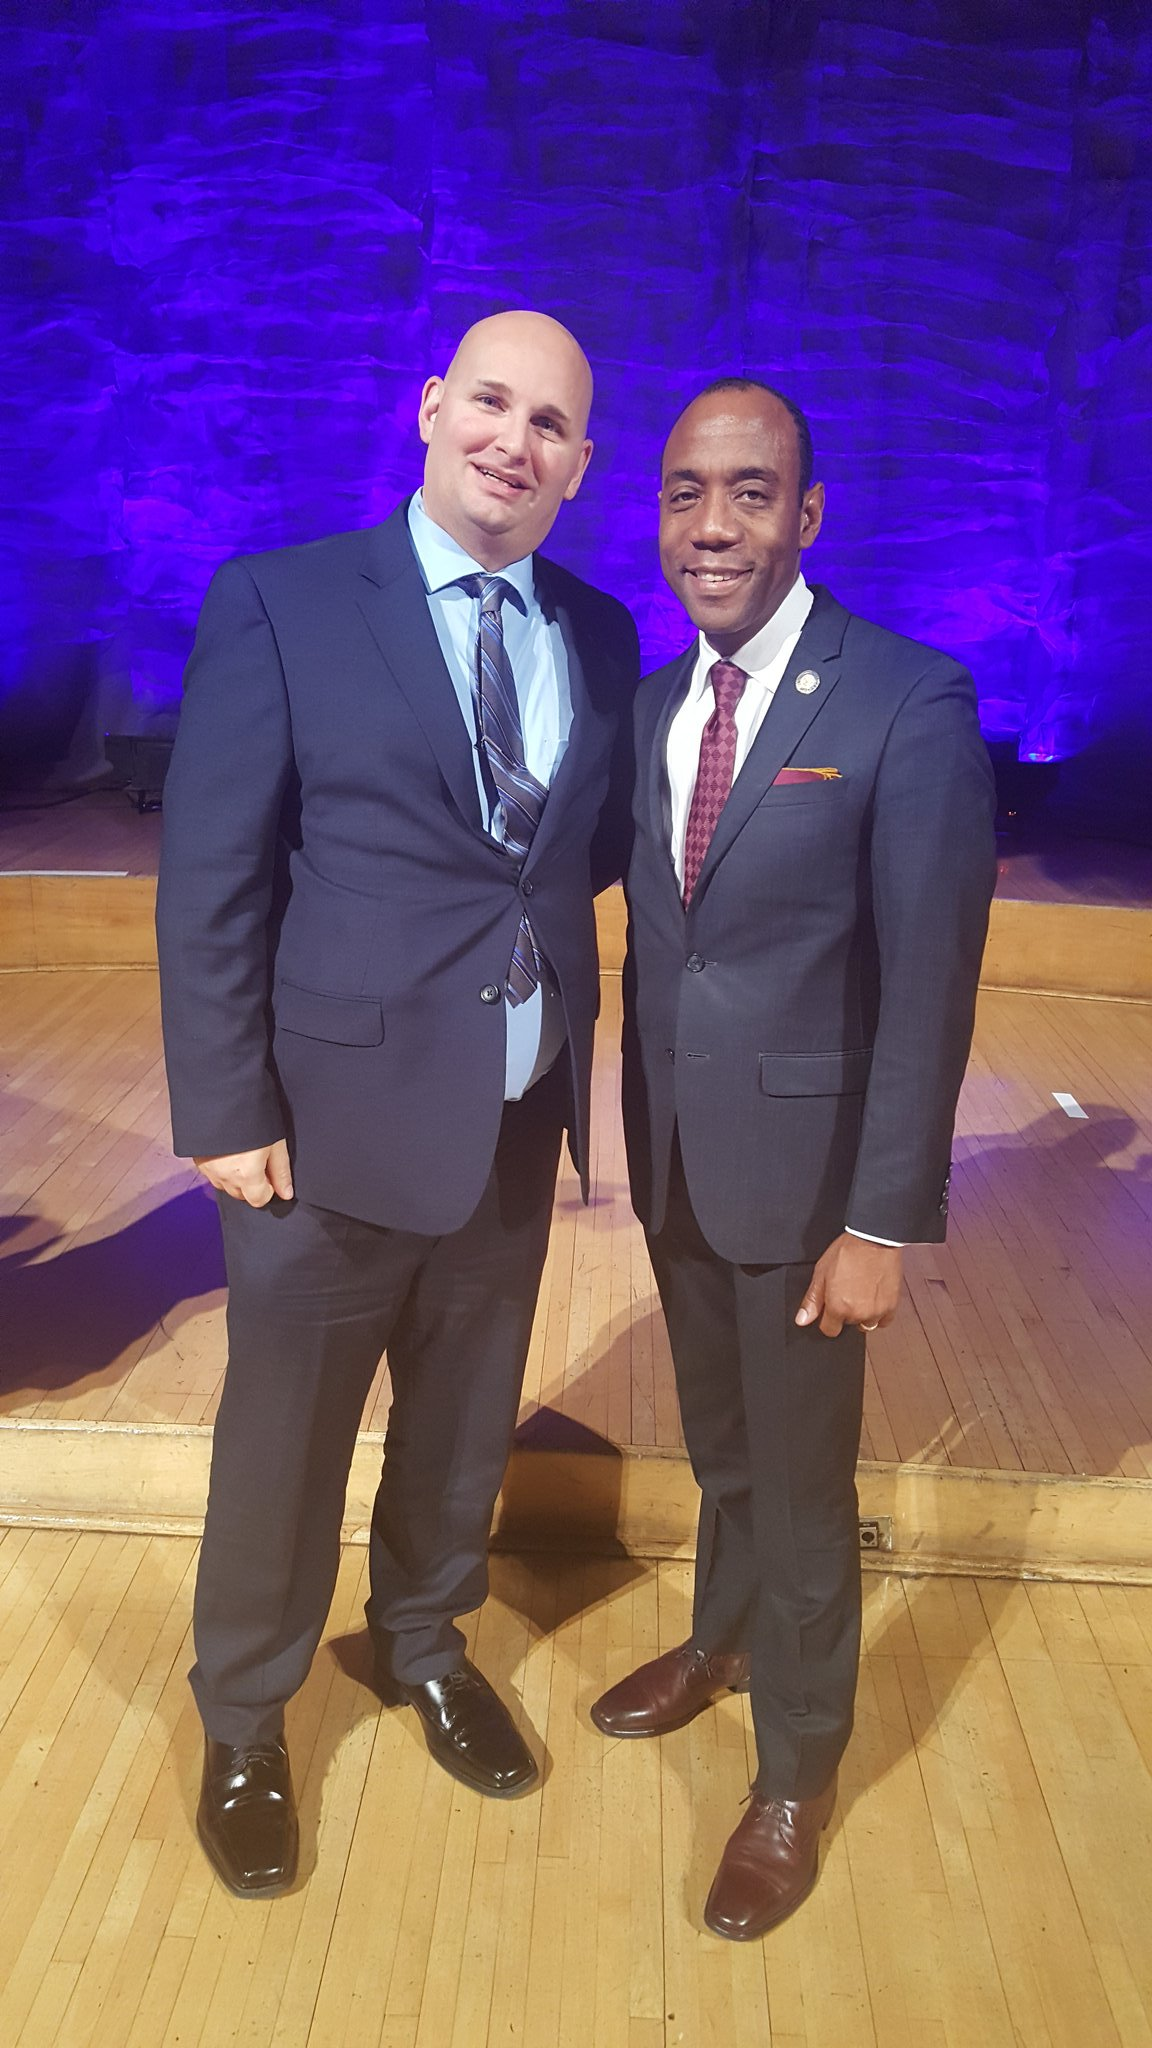 Was a great honor & privilege to meet @CornellWBrooks last night at the MLK dinner @IUPUI to celebrate the life of a great man! #MLKDAY https://t.co/CRTMQP7OoR